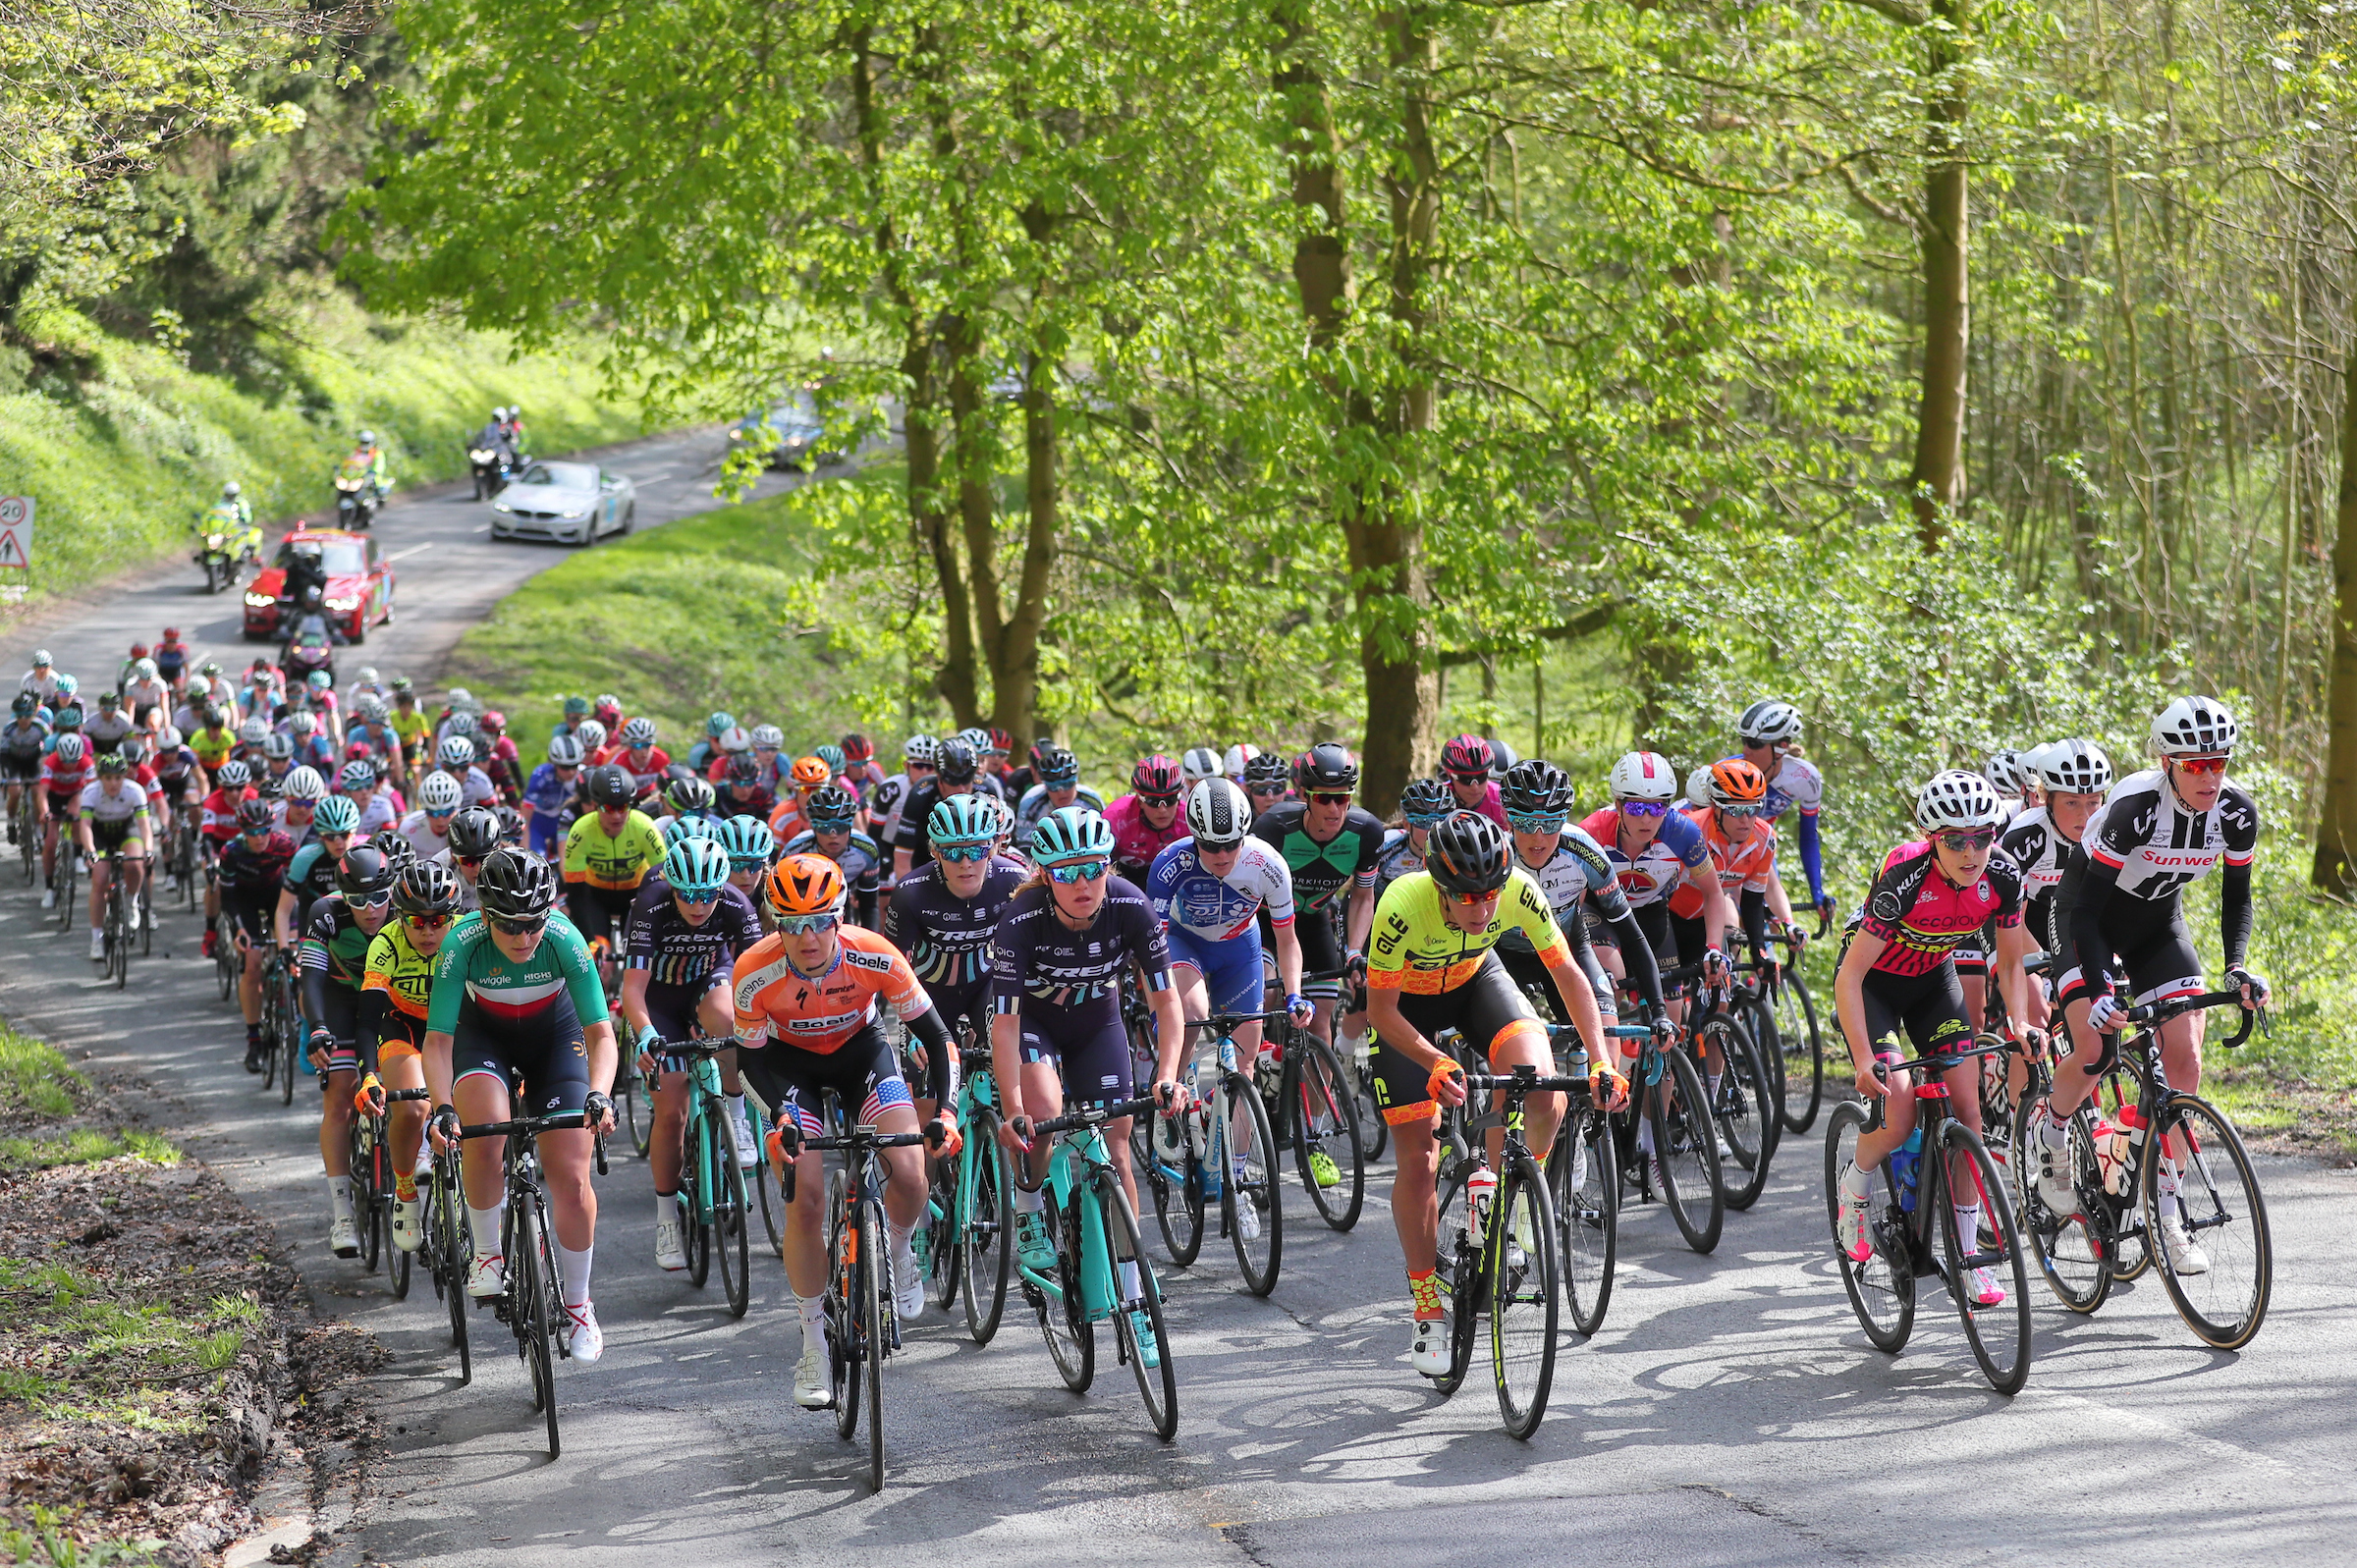 Women's Tour of Britain Colchester and Clacton route revealed